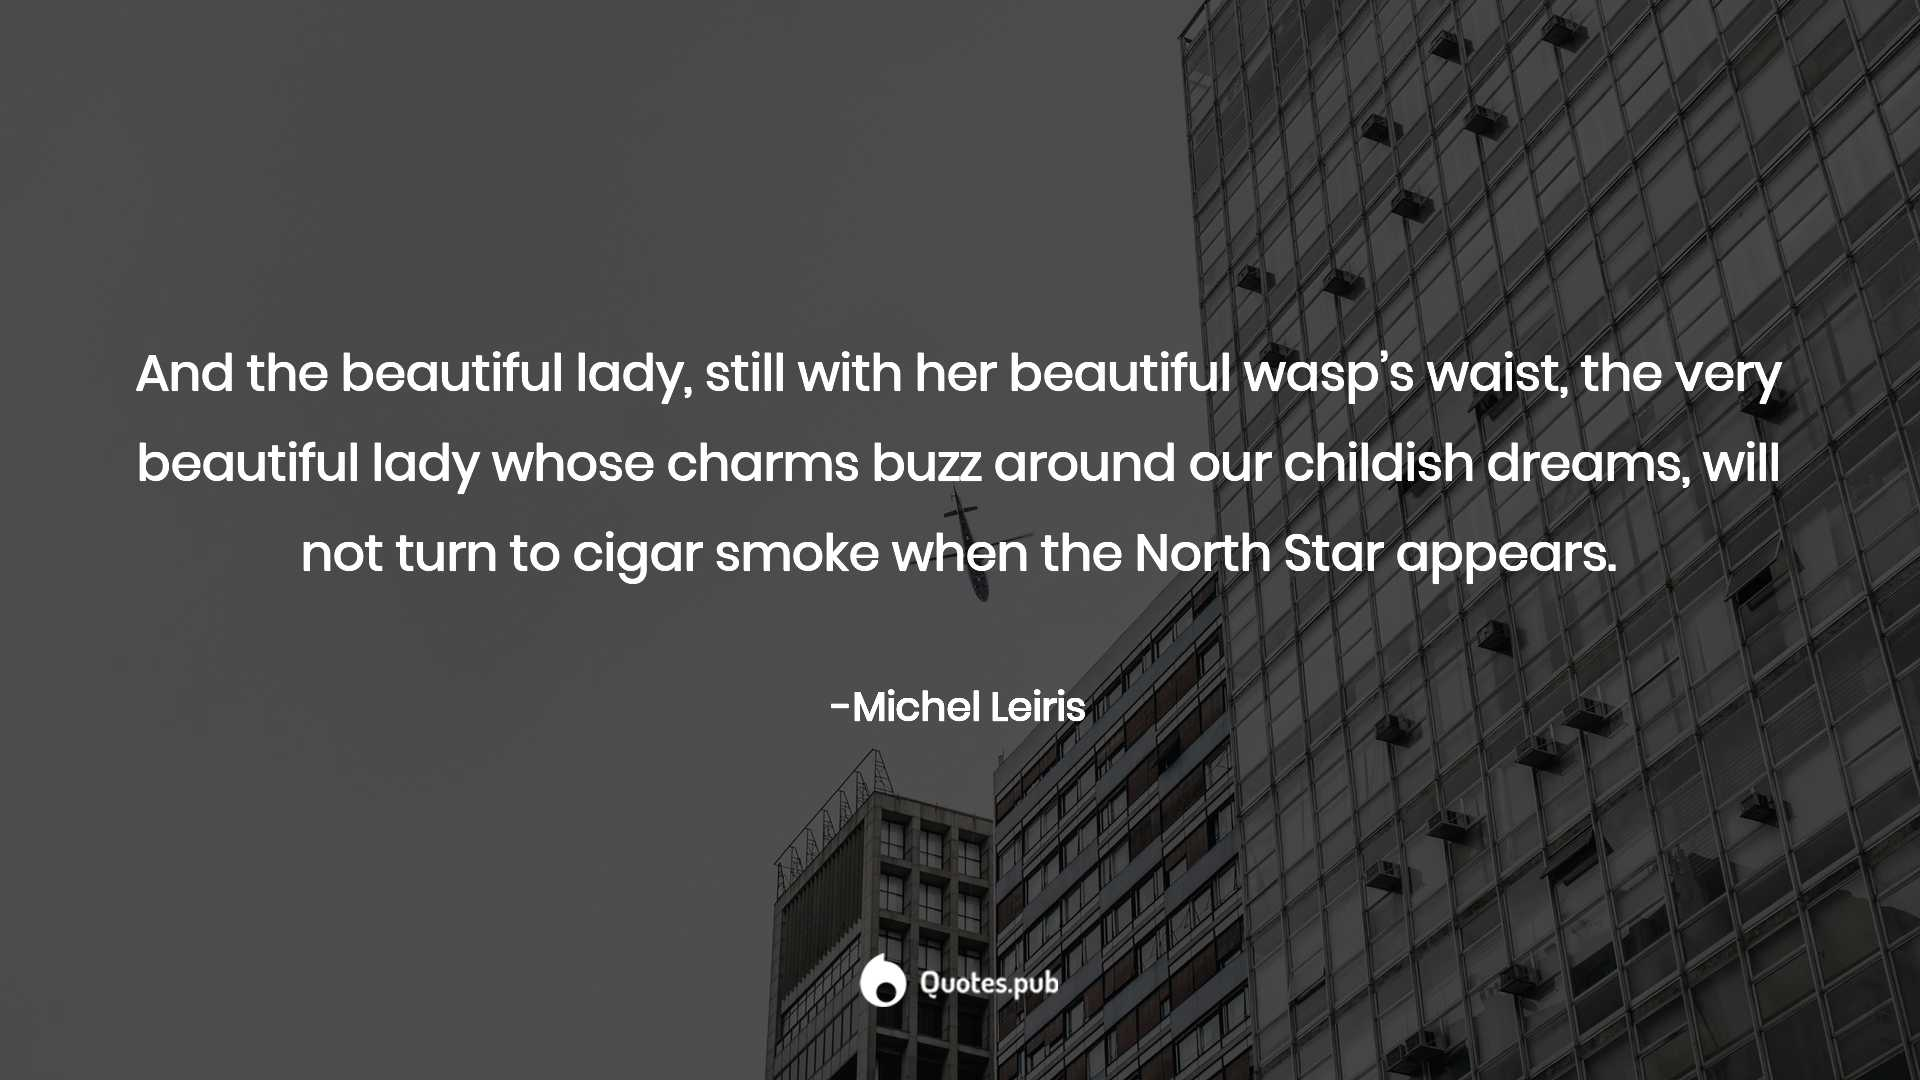 And The Beautiful Lady Still With Her Michel Leiris Quotes Pub